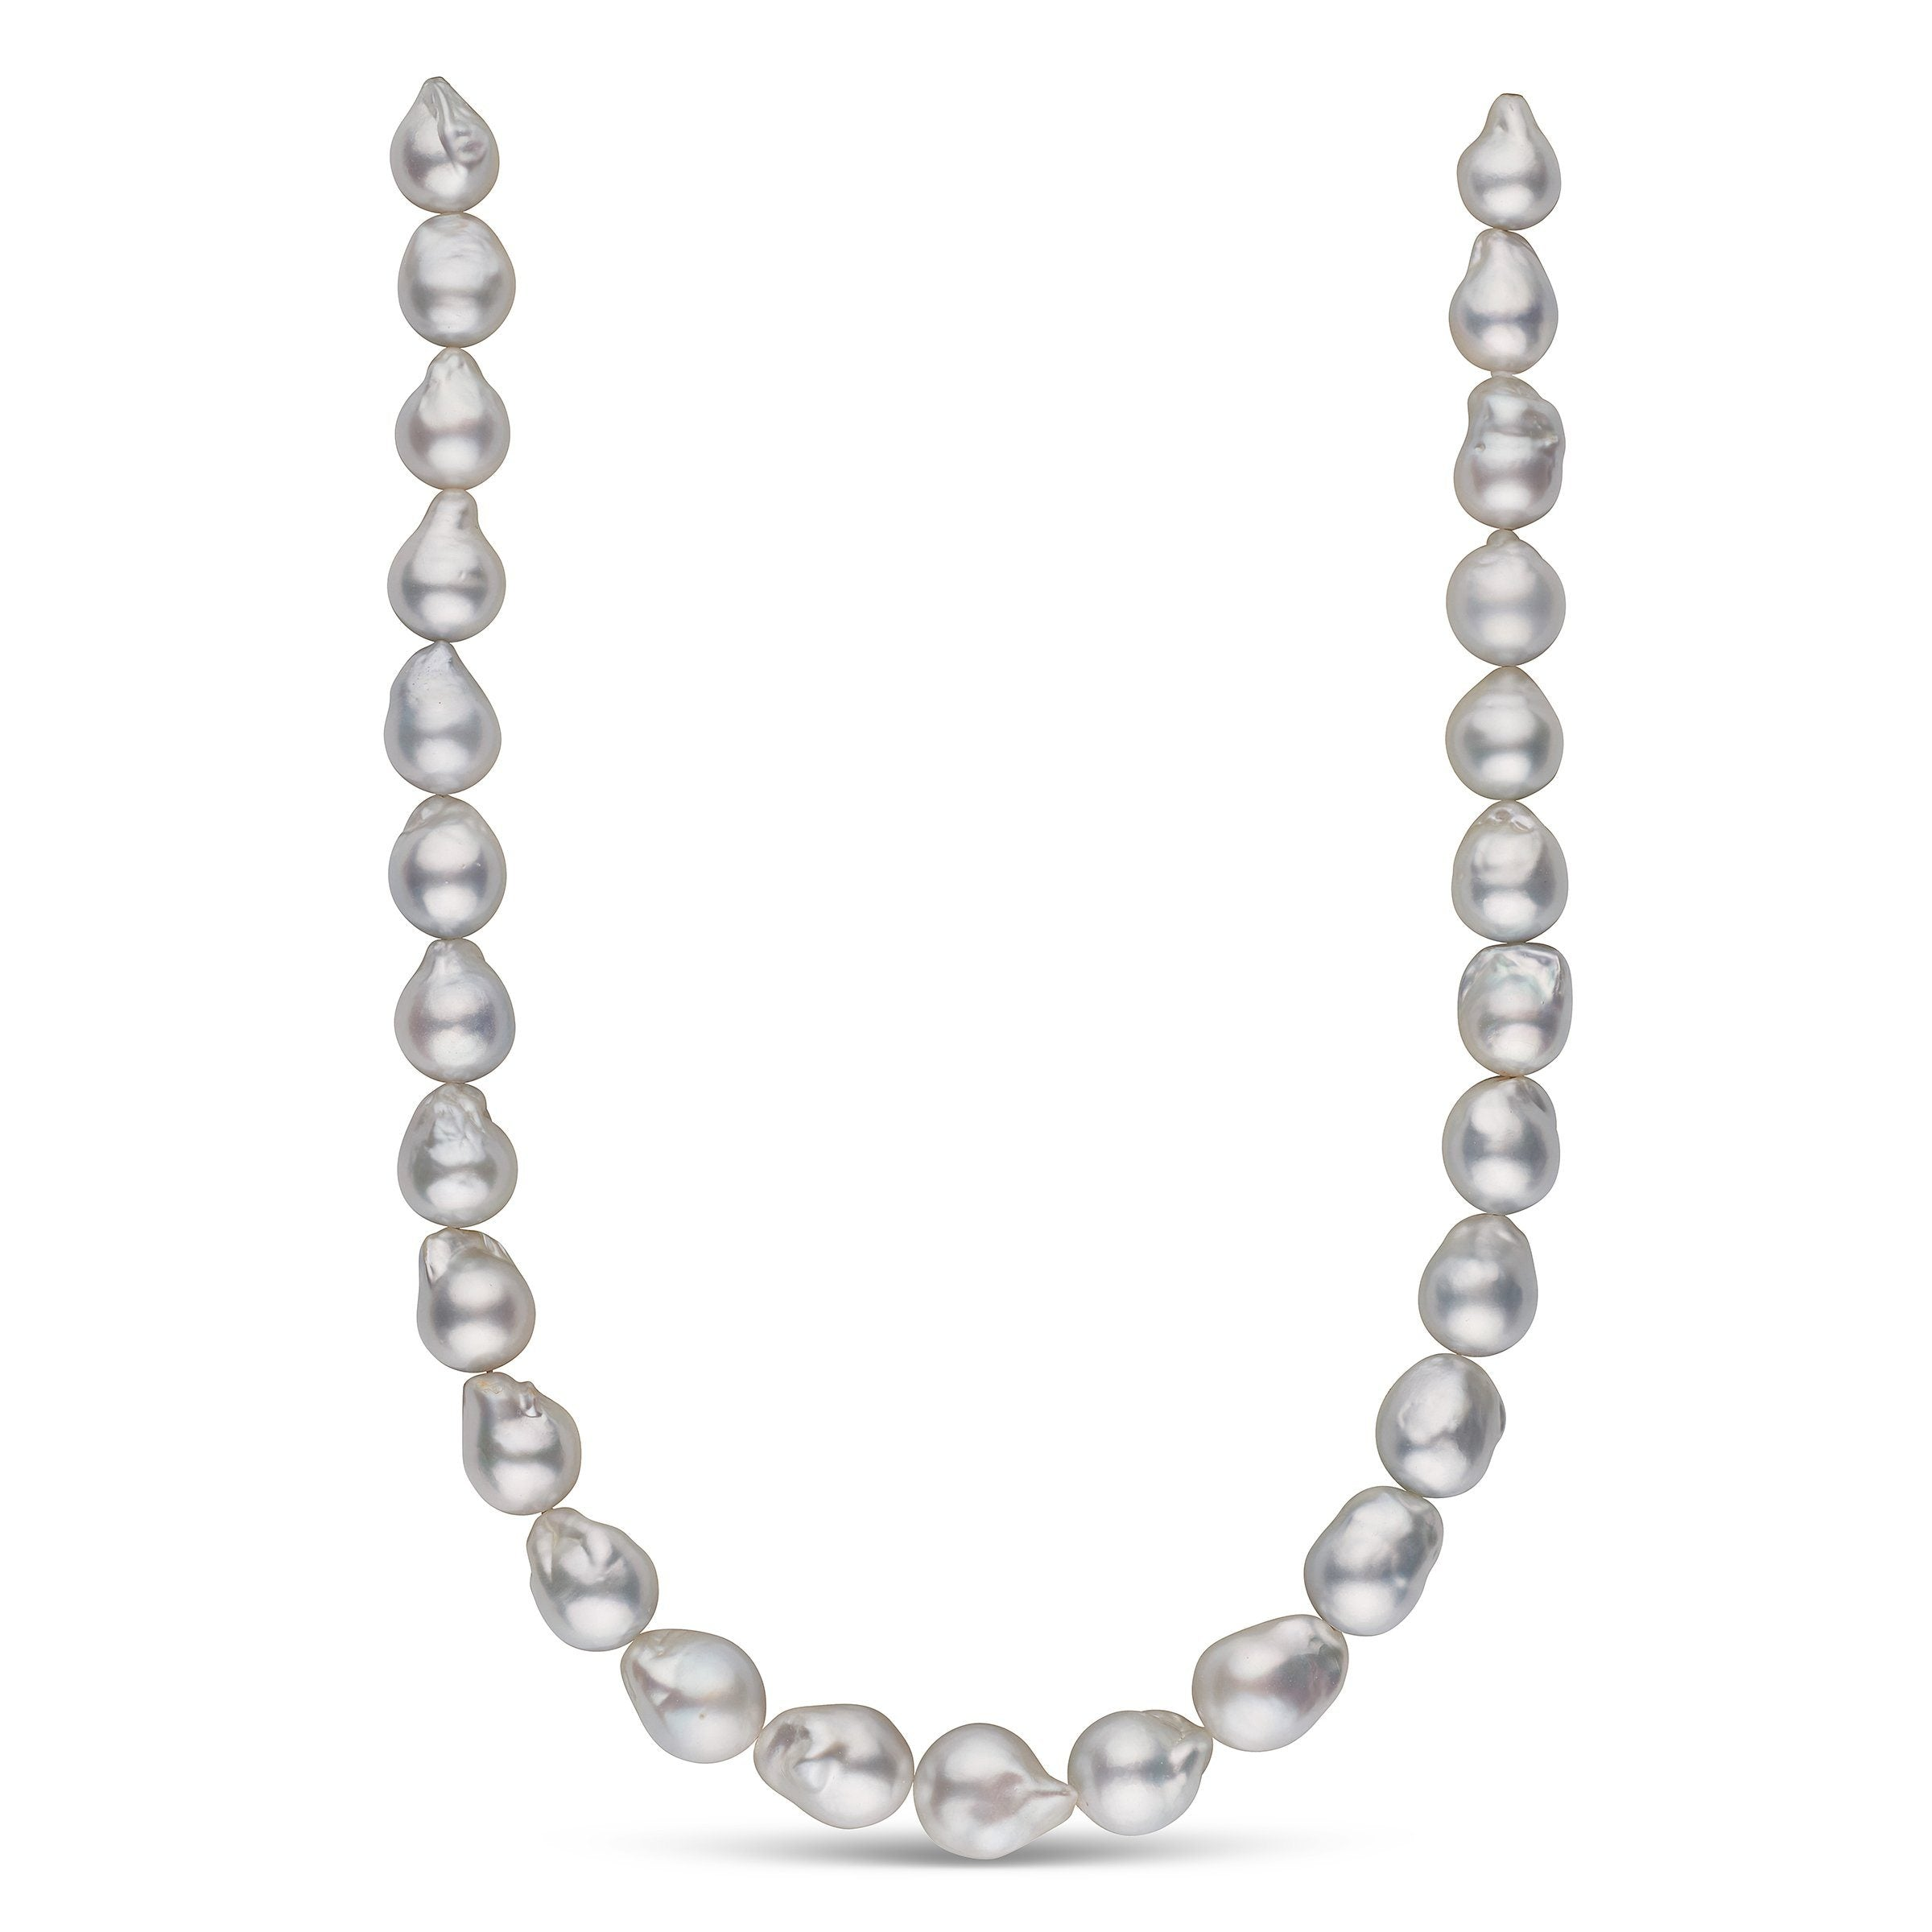 12.3-14.5 mm AA+/AAA White South Sea Baroque Pearl Necklace